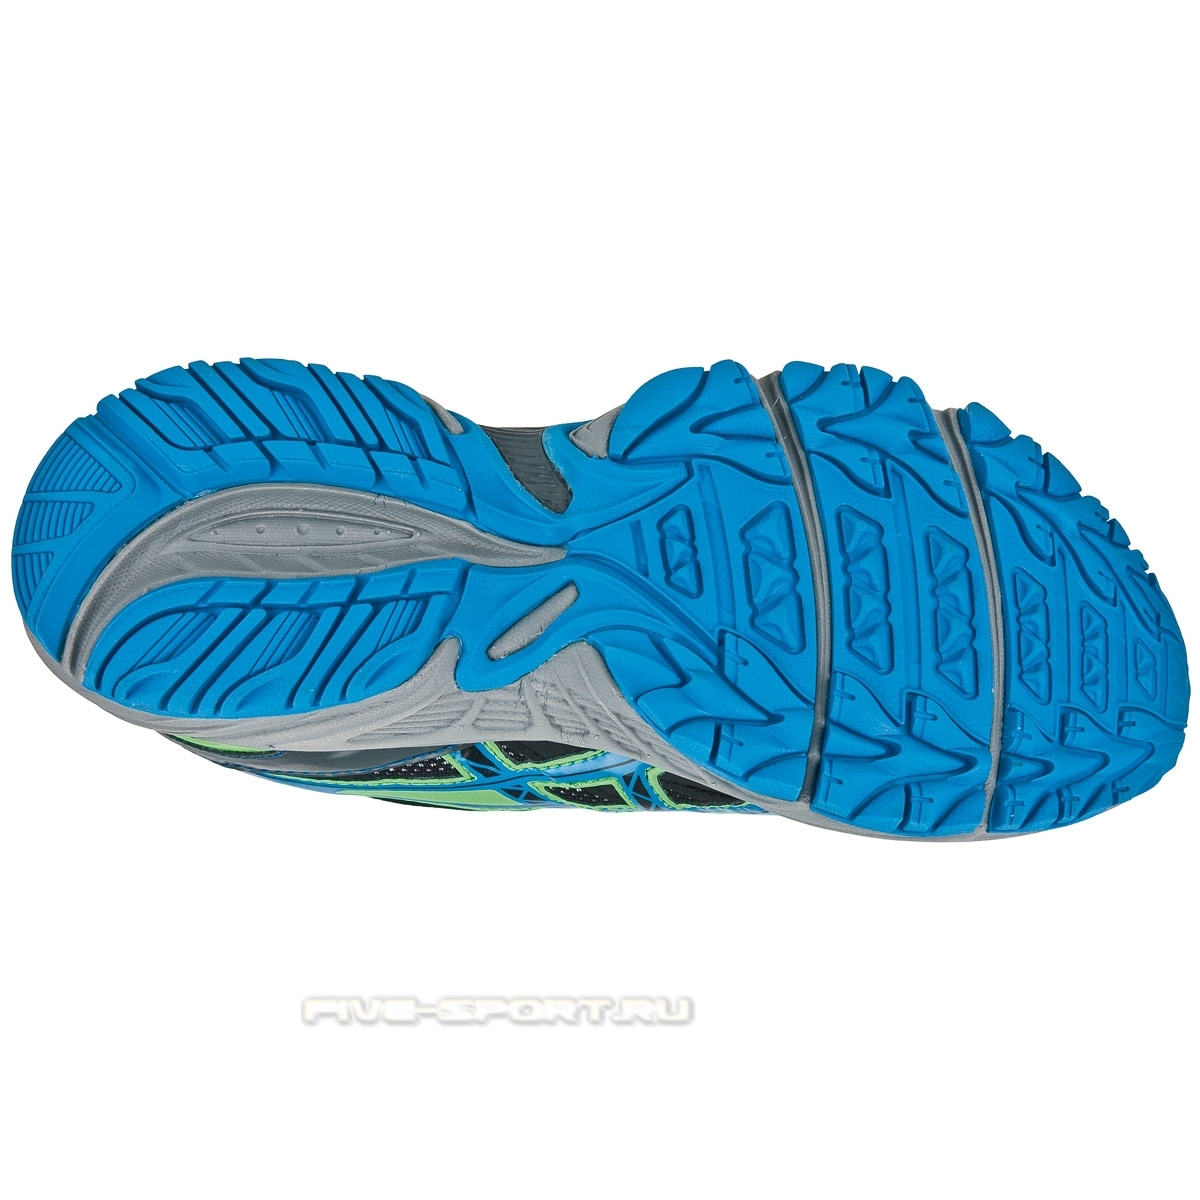 Кроссовки Asics Gel-Enduro 9 GS - купить в Five-sport.ru C331N 9542